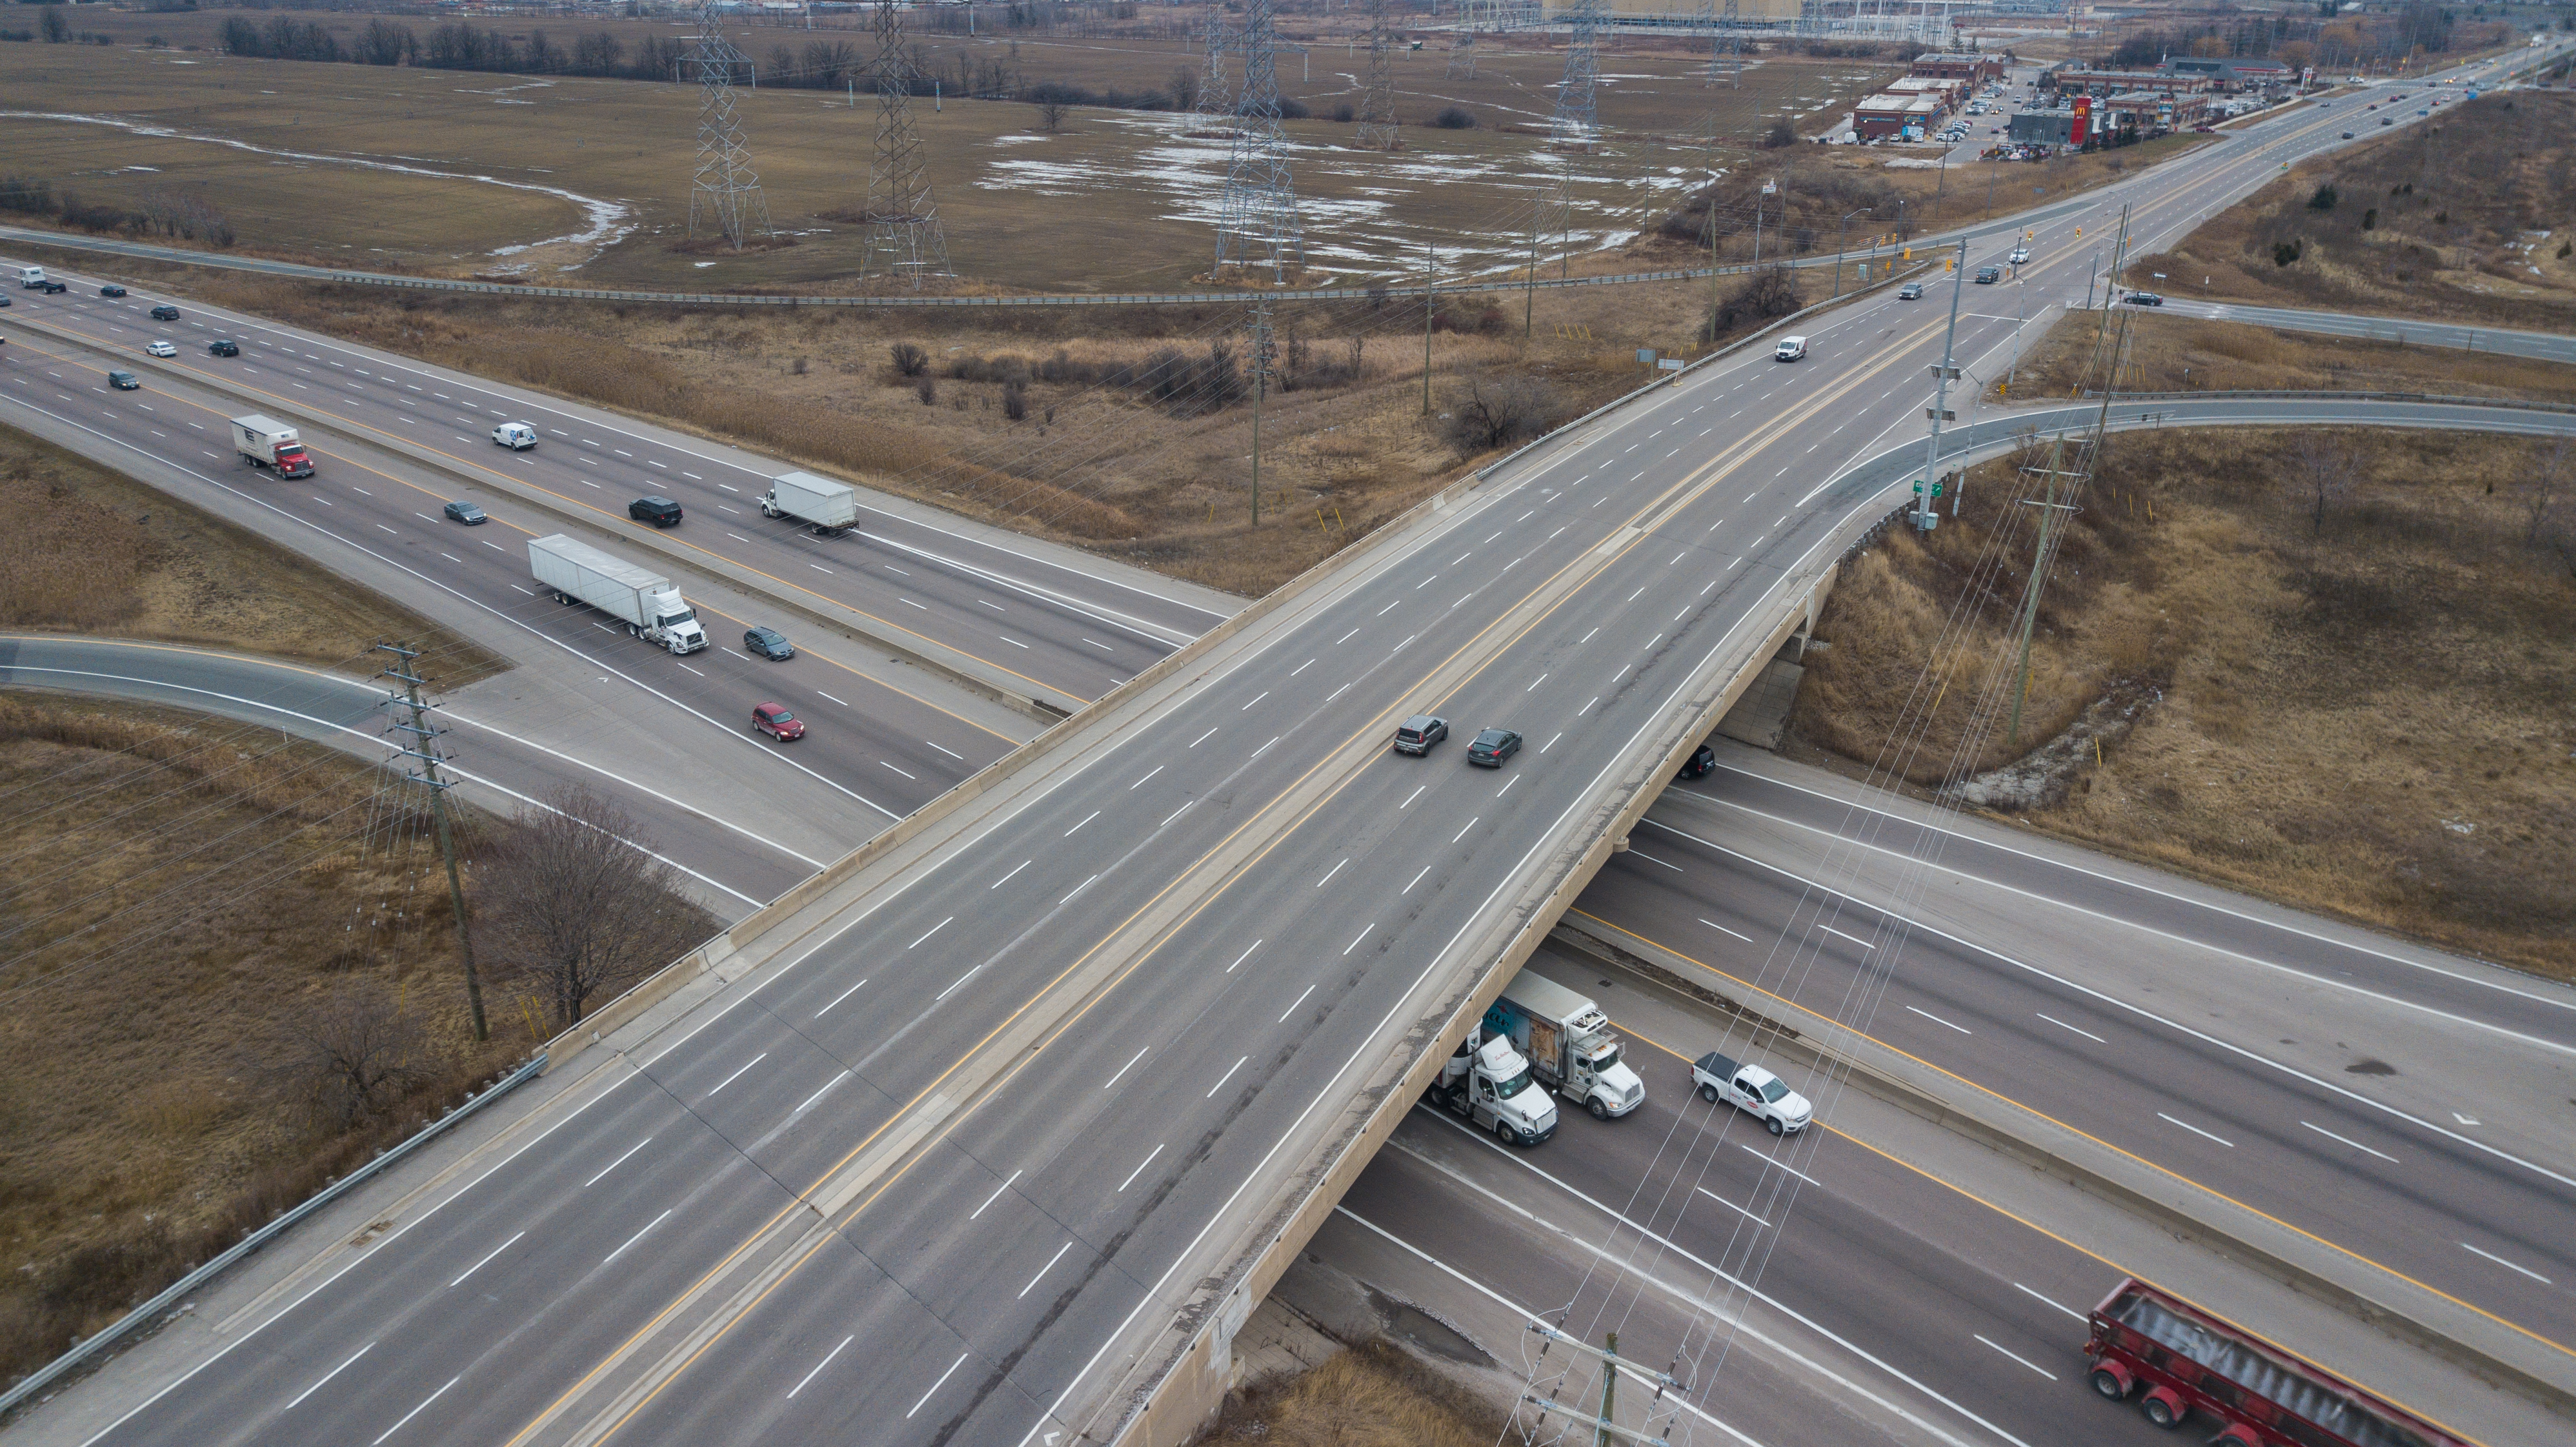 Aerial view of Highway 401 at James Snow Parkway Bridge southbound